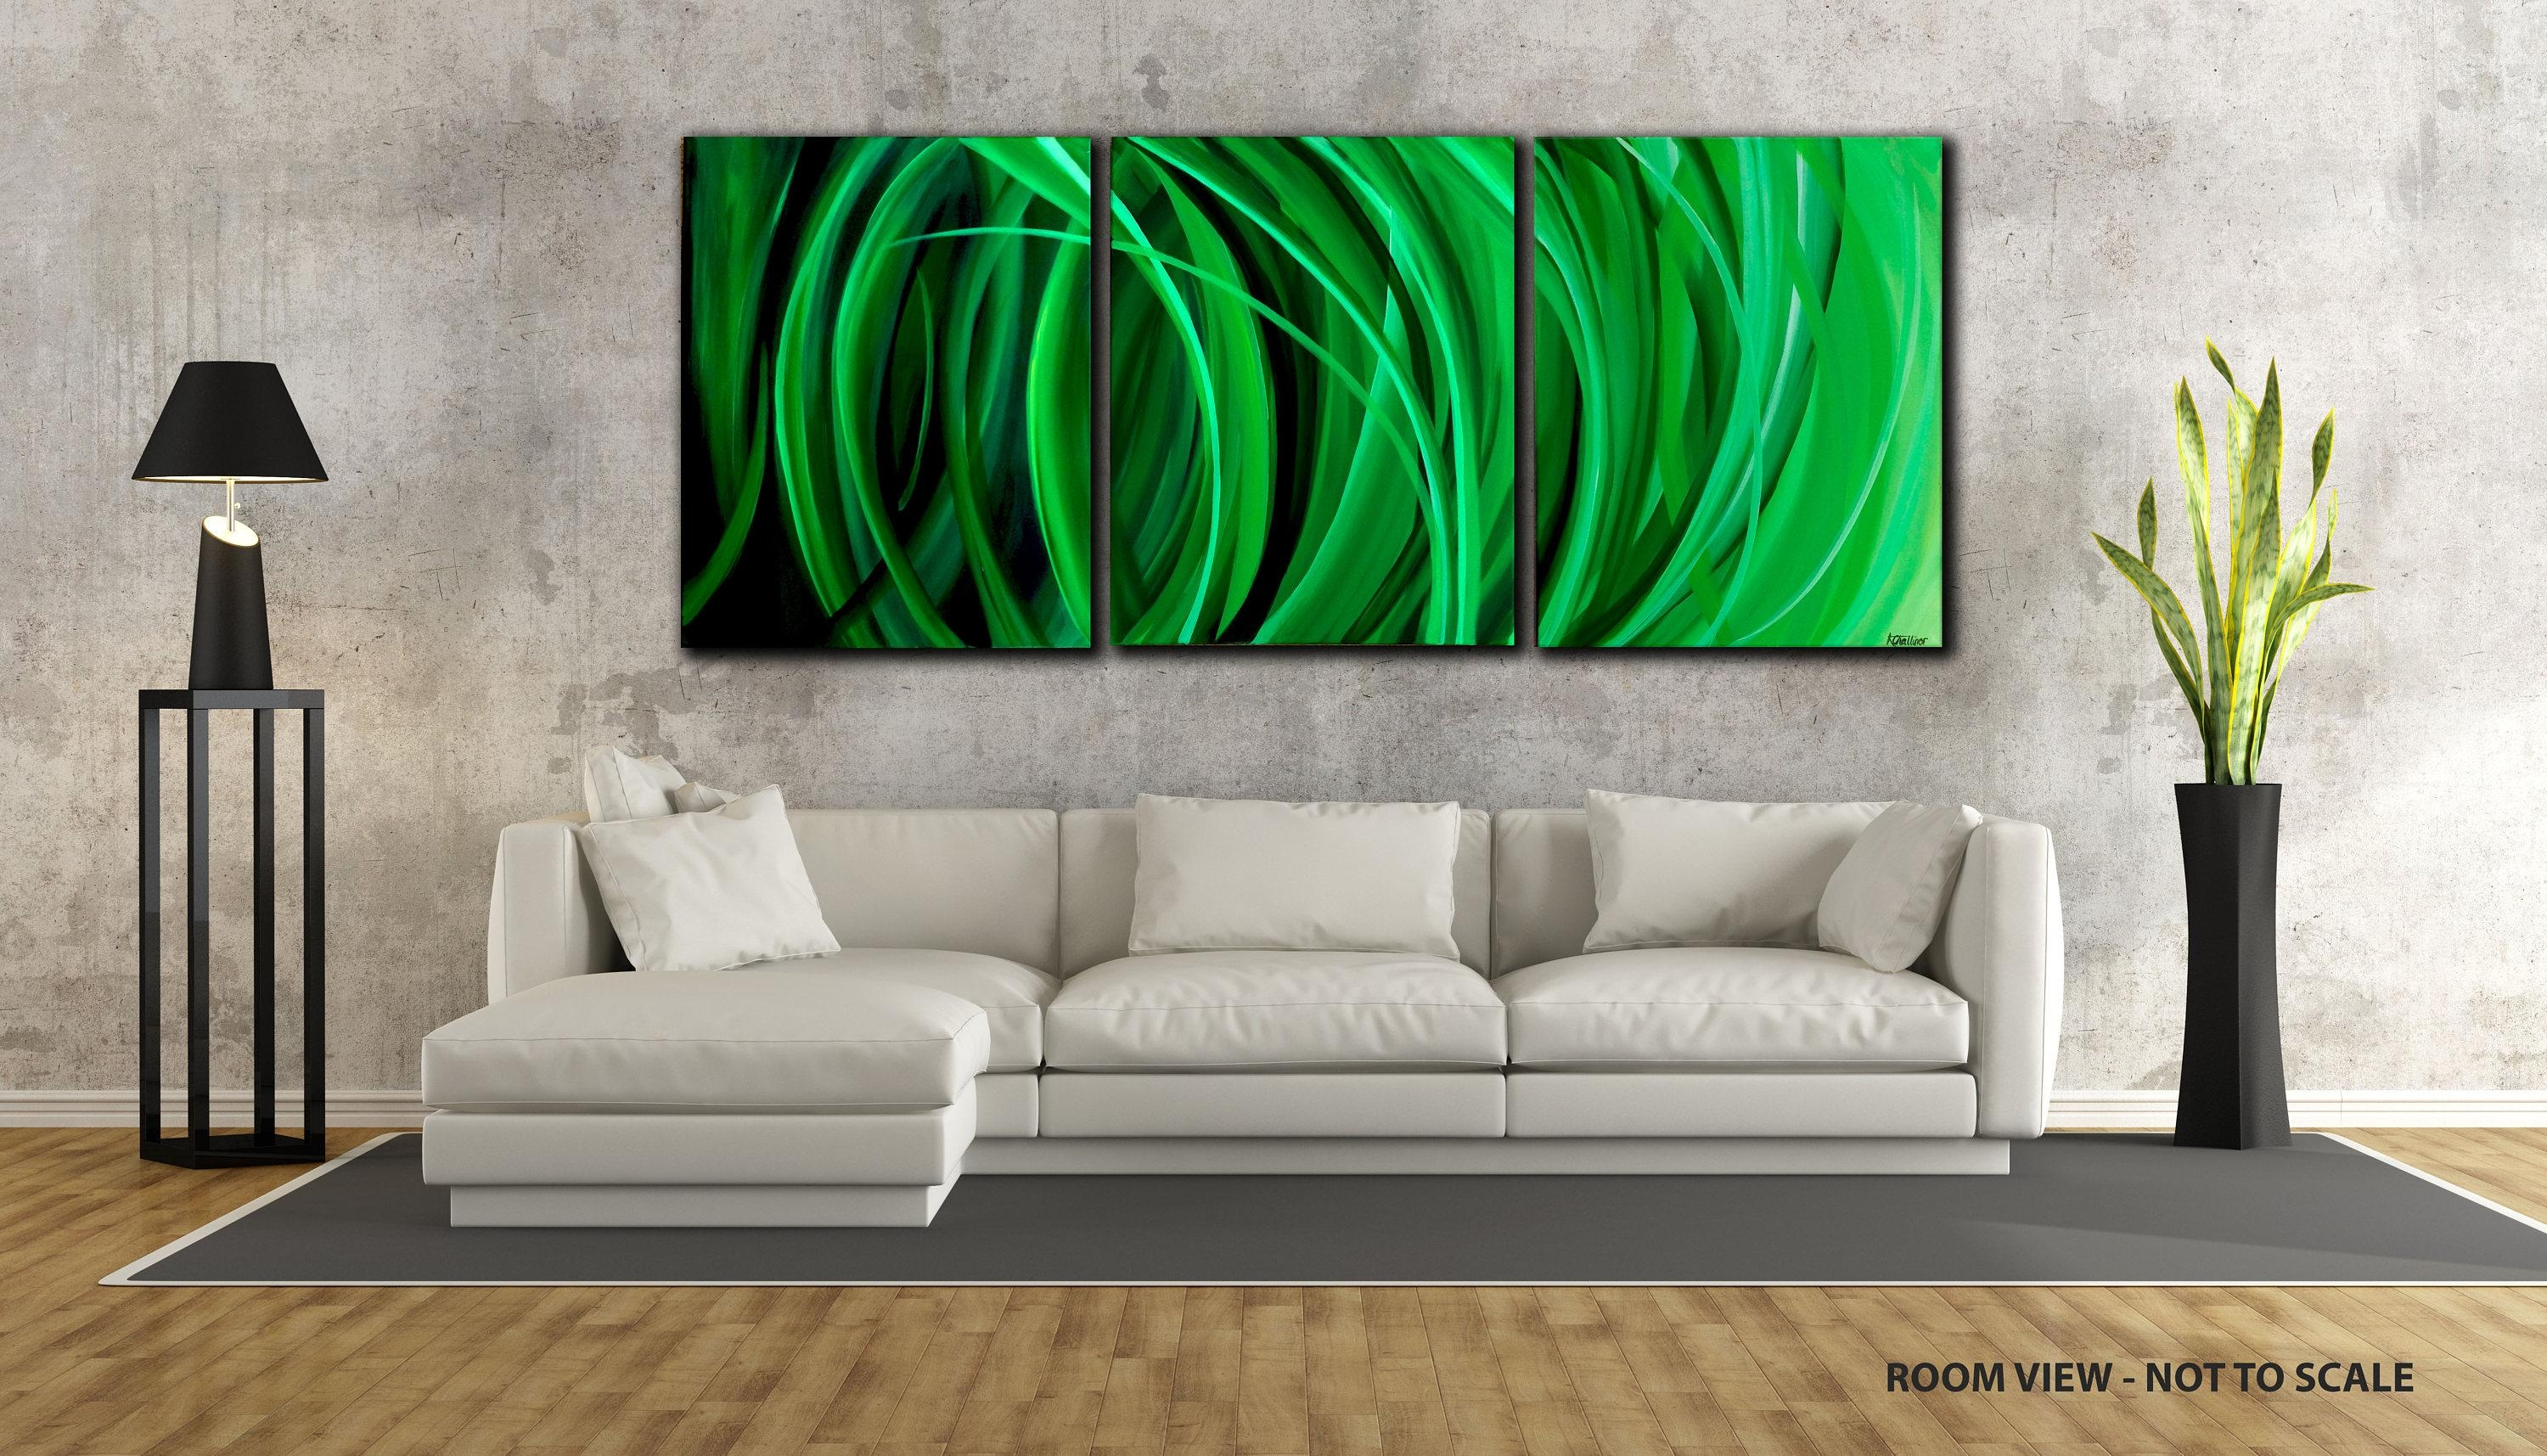 48 Large, Original Abstract Painting, Canvas, Wall Art, Modern Inside Large Green Wall Art (View 12 of 20)